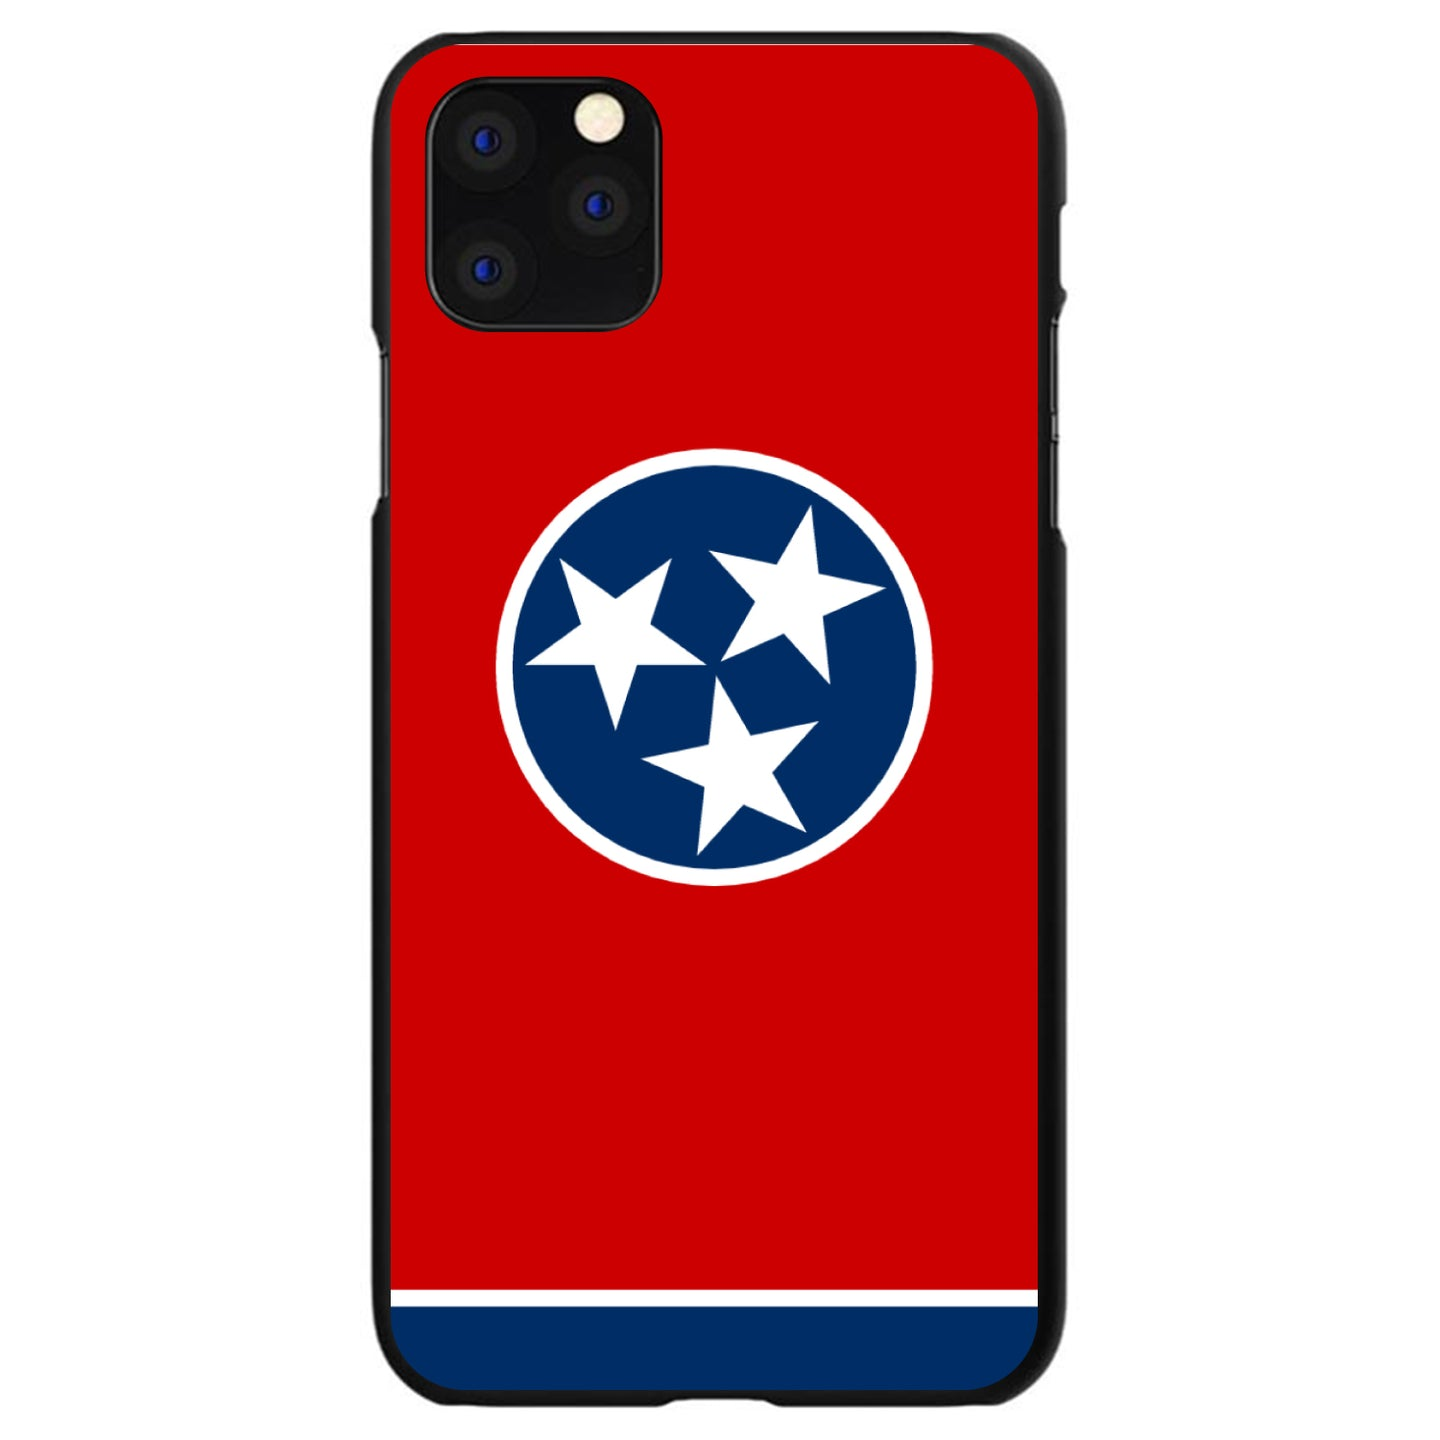 DistinctInk® Hard Plastic Snap-On Case for Apple iPhone - Tennessee State Flag